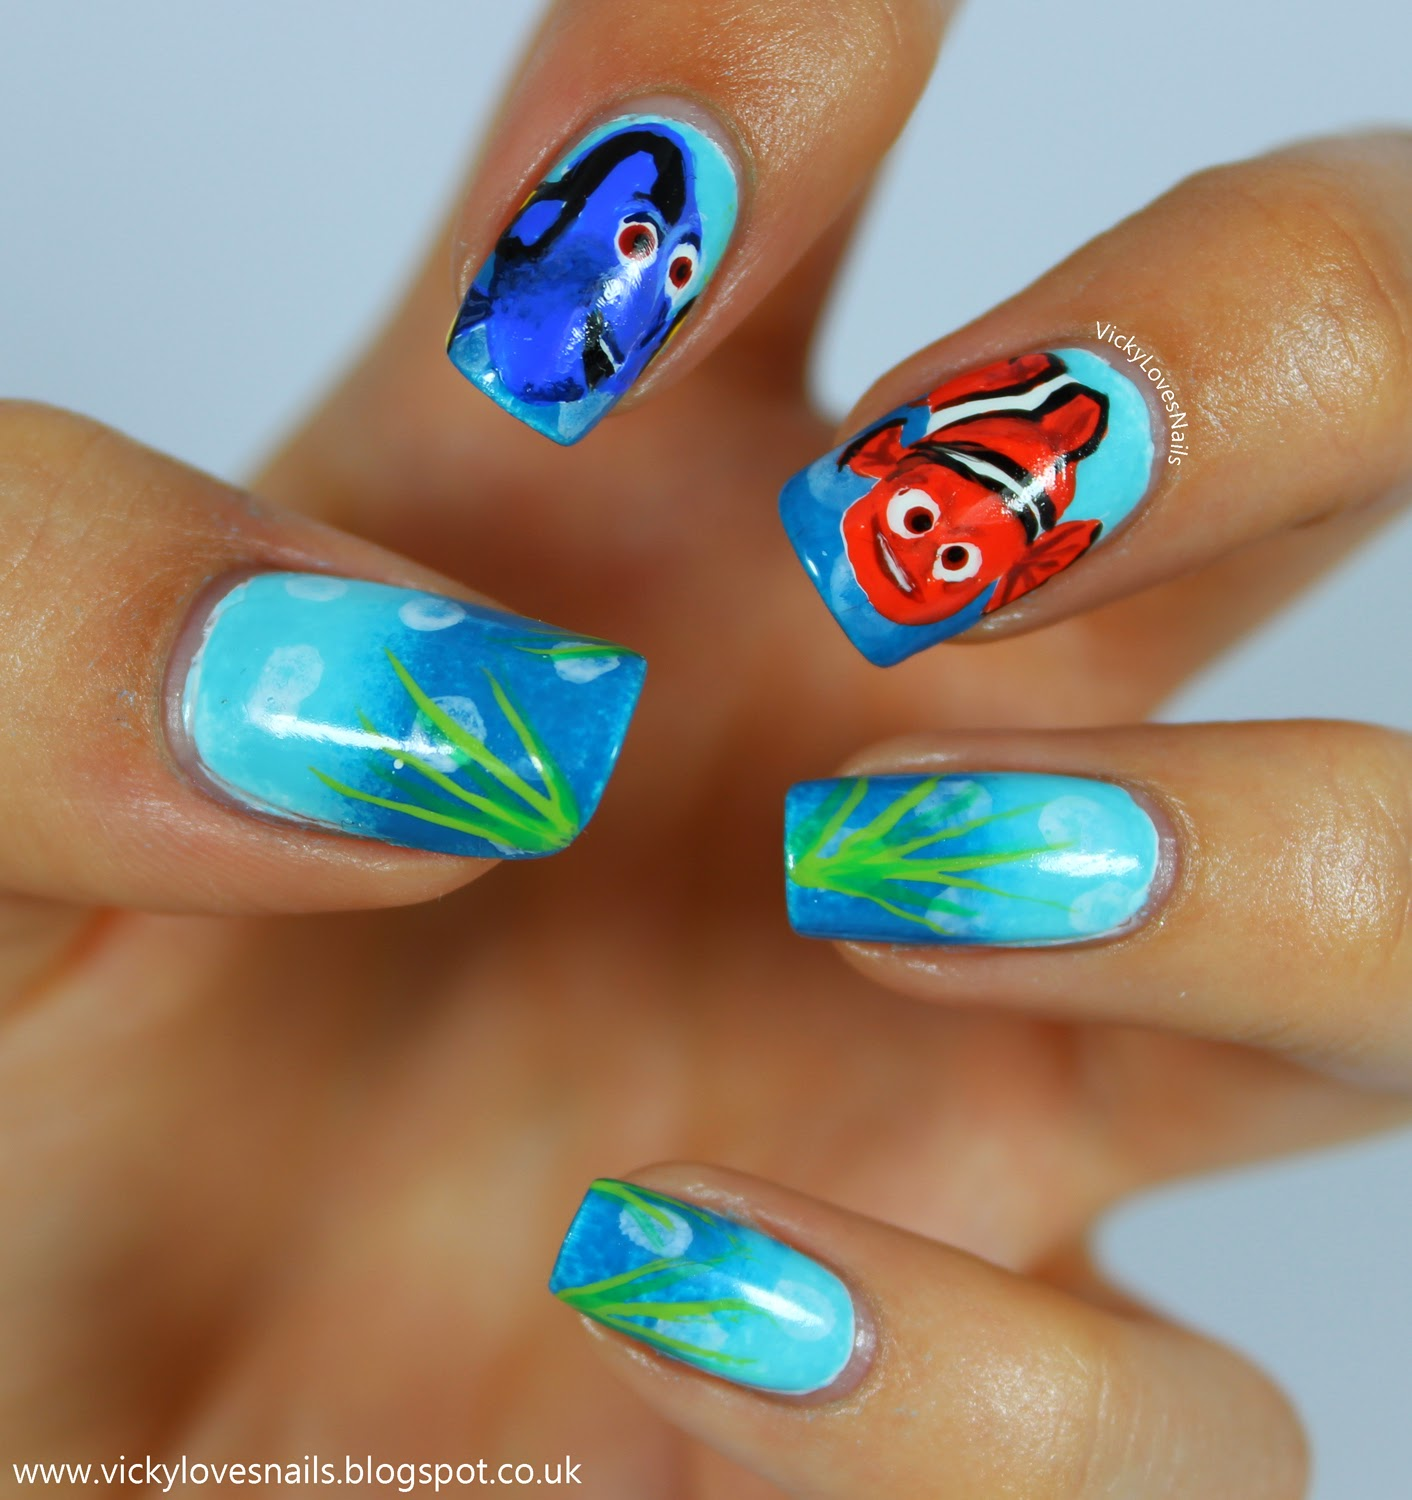 Vicky loves nails life in lacquers nail art challenge film or i started these nails off with a gradient using barielle surfs up and an unnamed color club i then added my bubbles using sinful colors snow me white prinsesfo Gallery